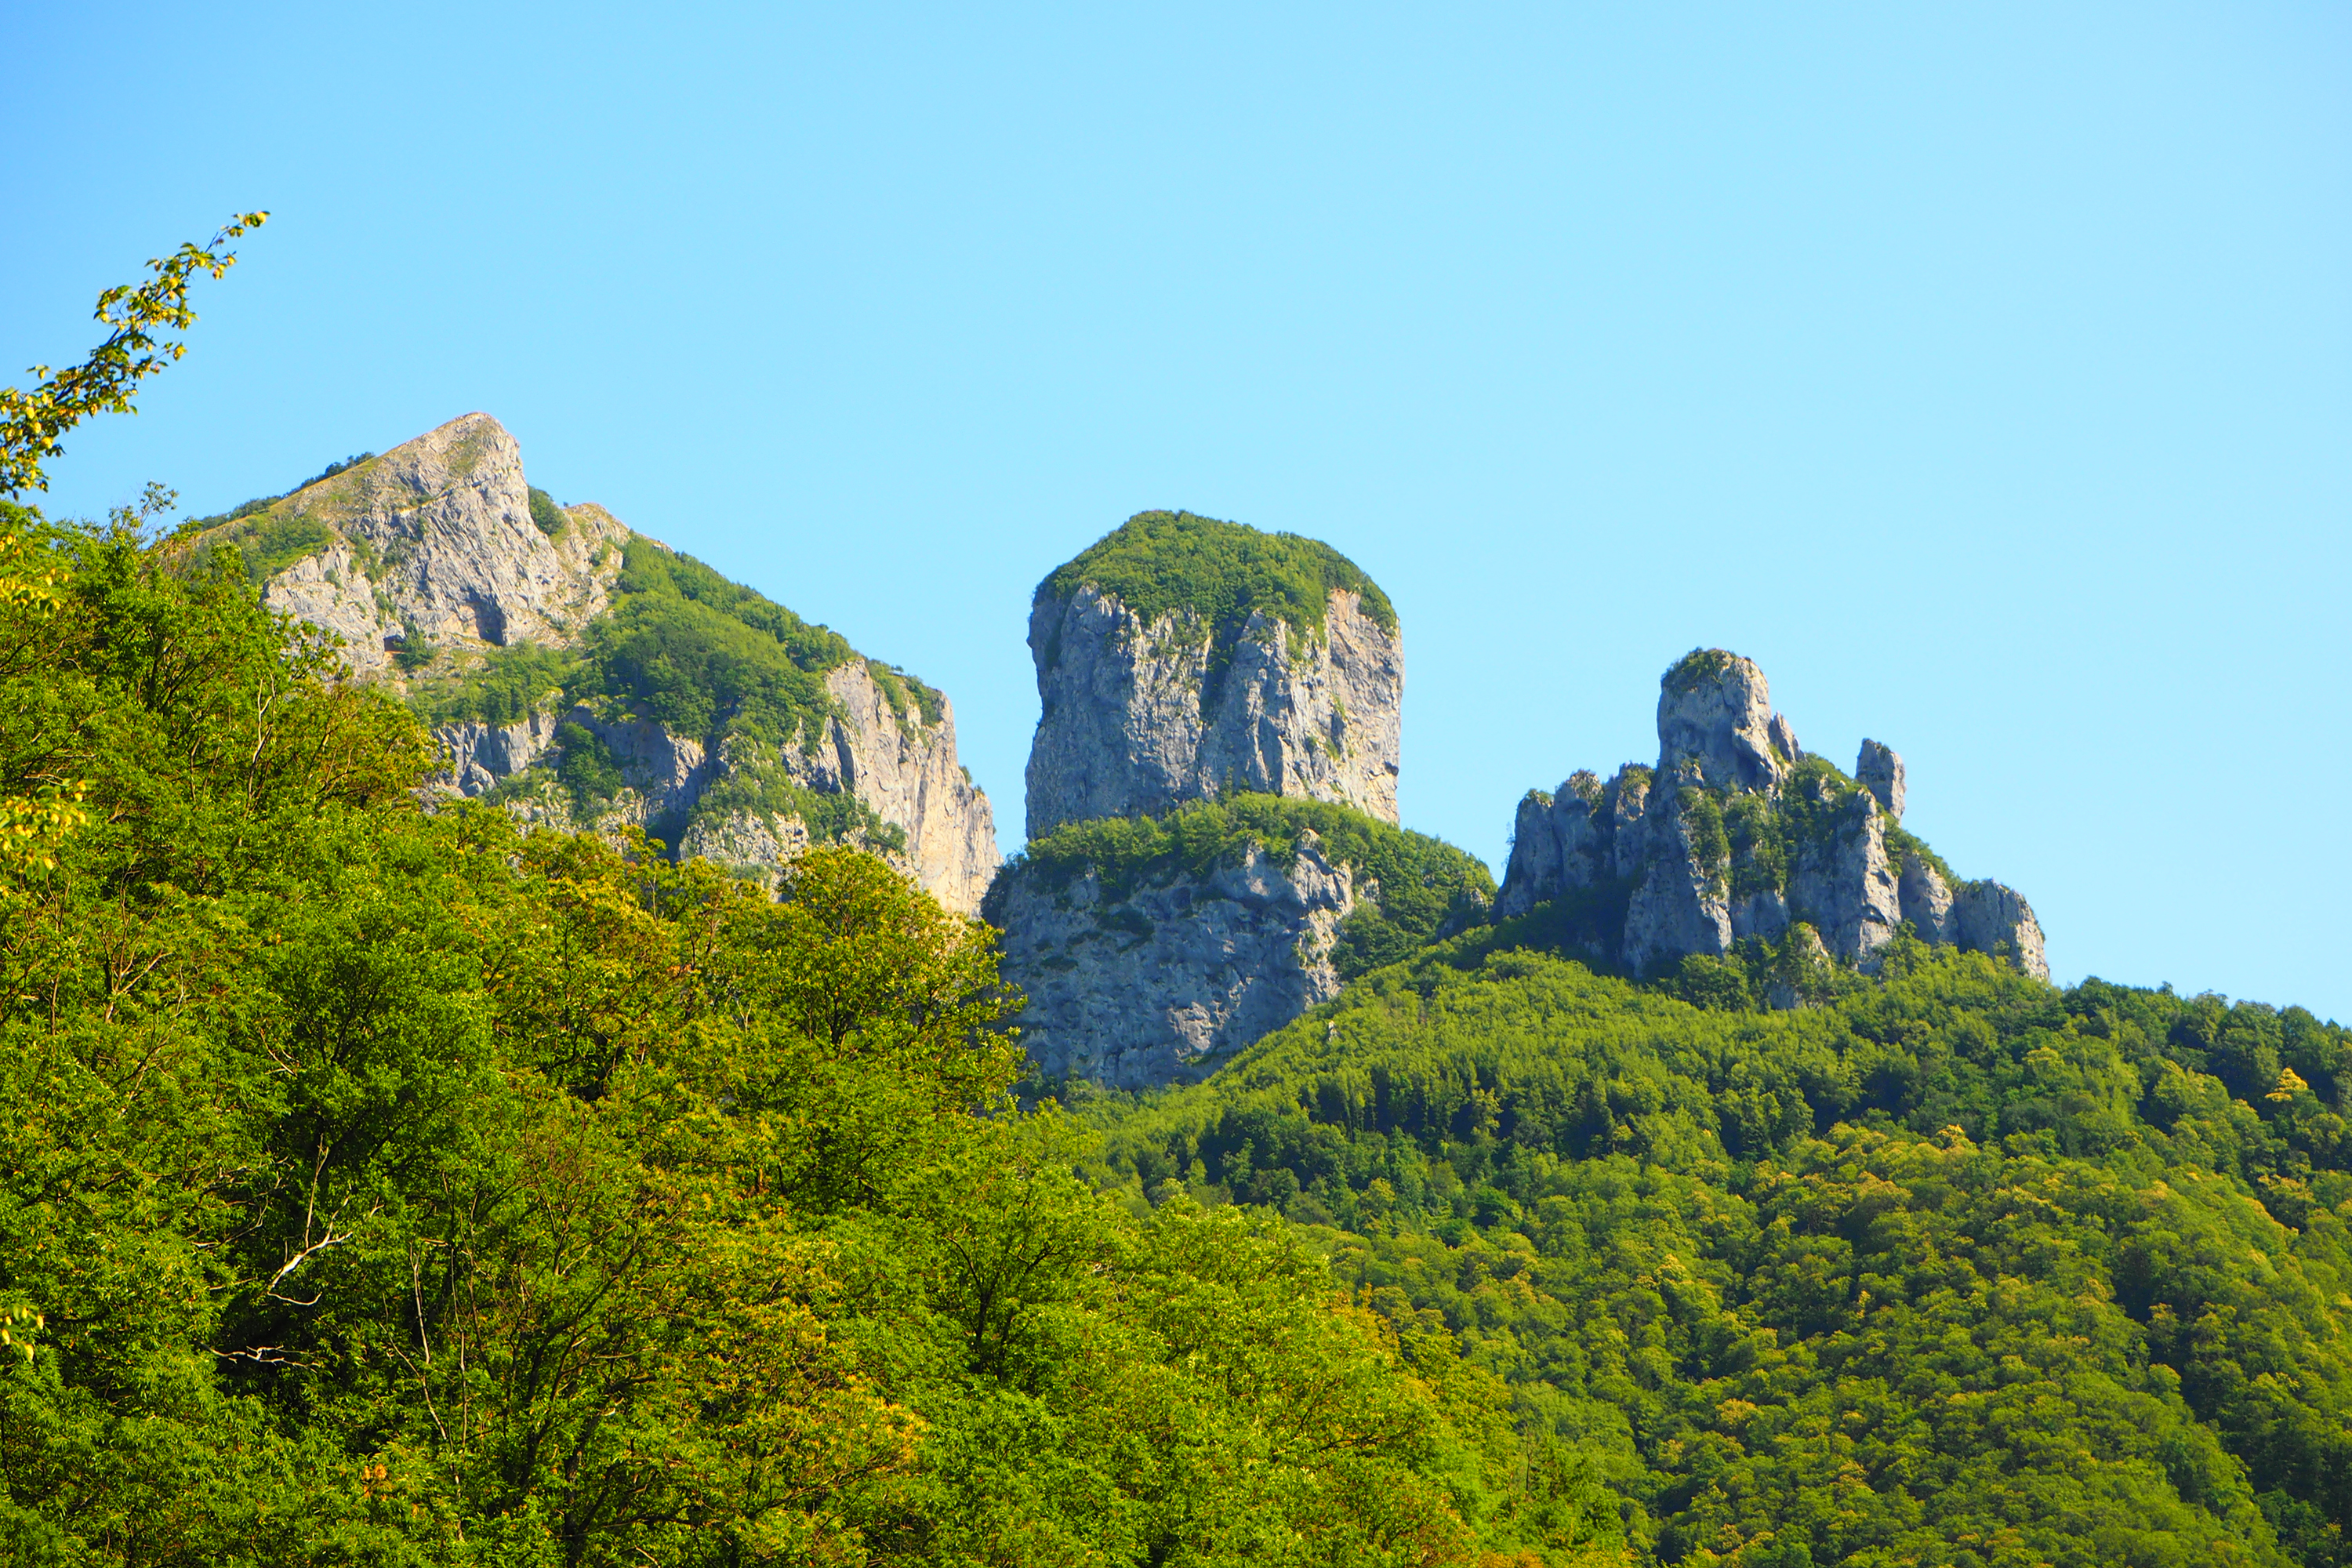 Apuan Alps - Group of Mount Nona, Procinto, I Bimbi